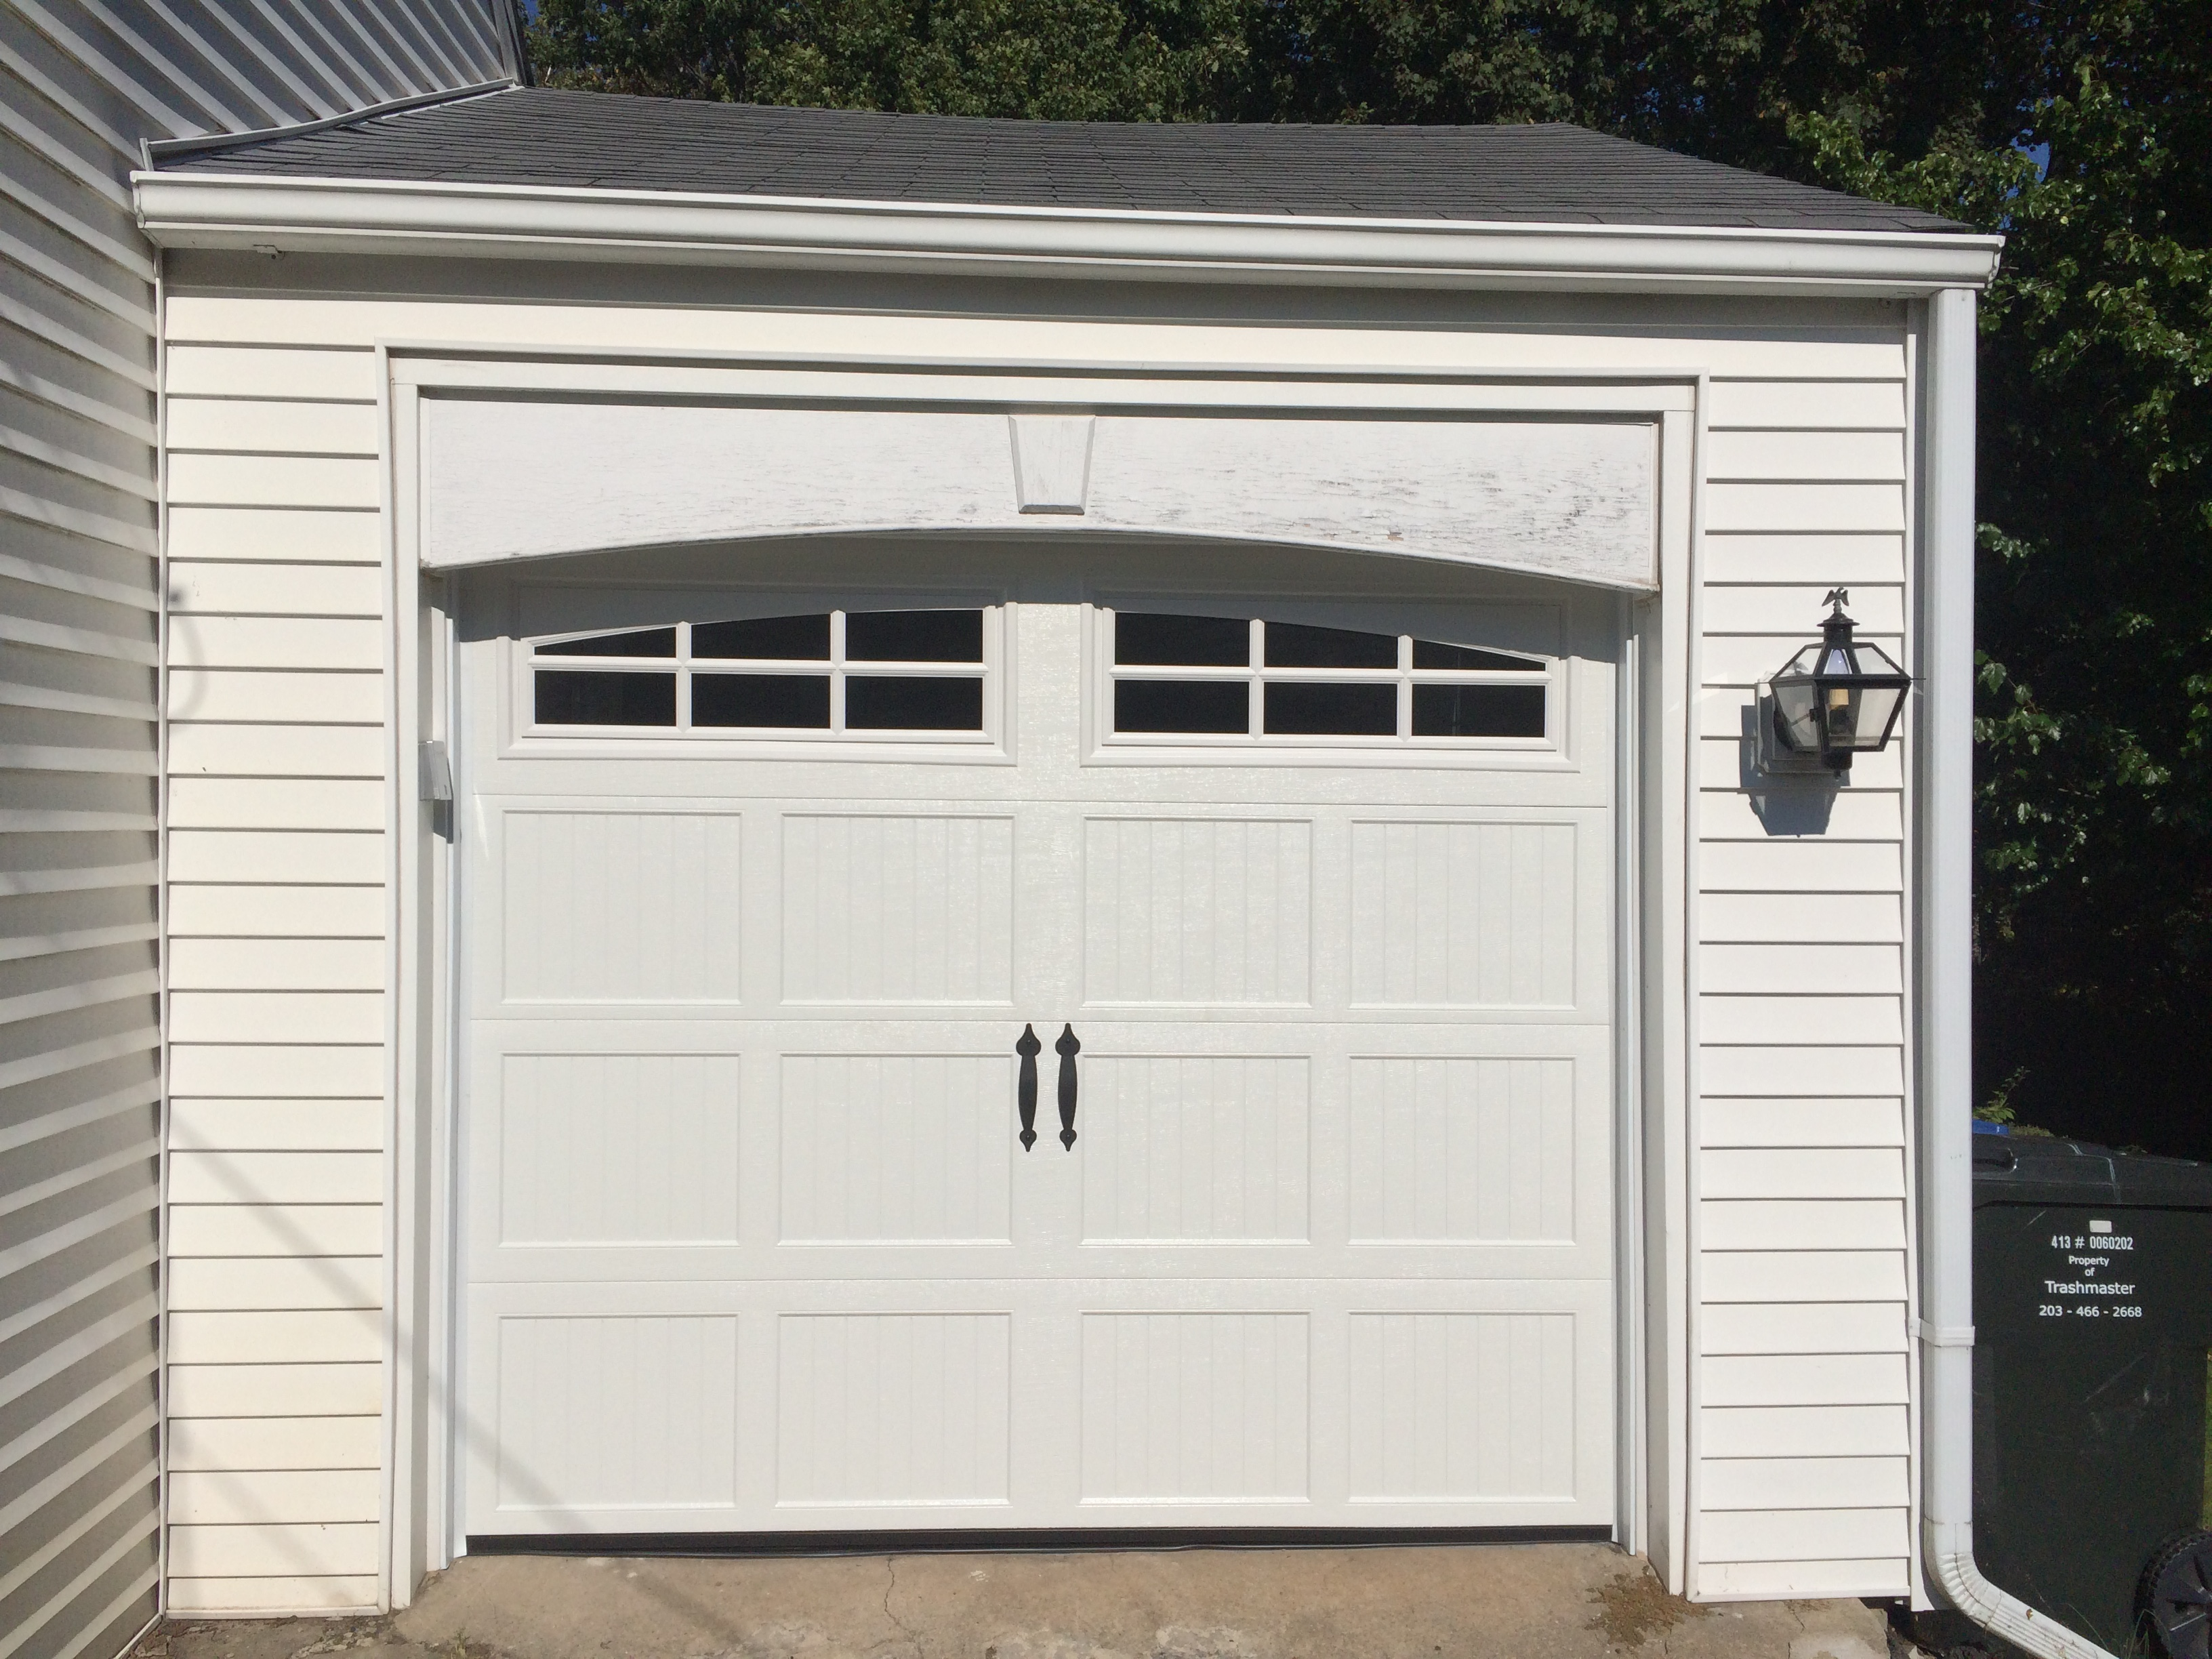 Classica northampton garage door white 9 x 8 no windows - 18 Wide X 8 High Haas 2080 R17 Insulation 4 24 High Sections Replaced 5 Section Door That Had Top Weatherstripping Hiding Part Of Raised Panels On Top